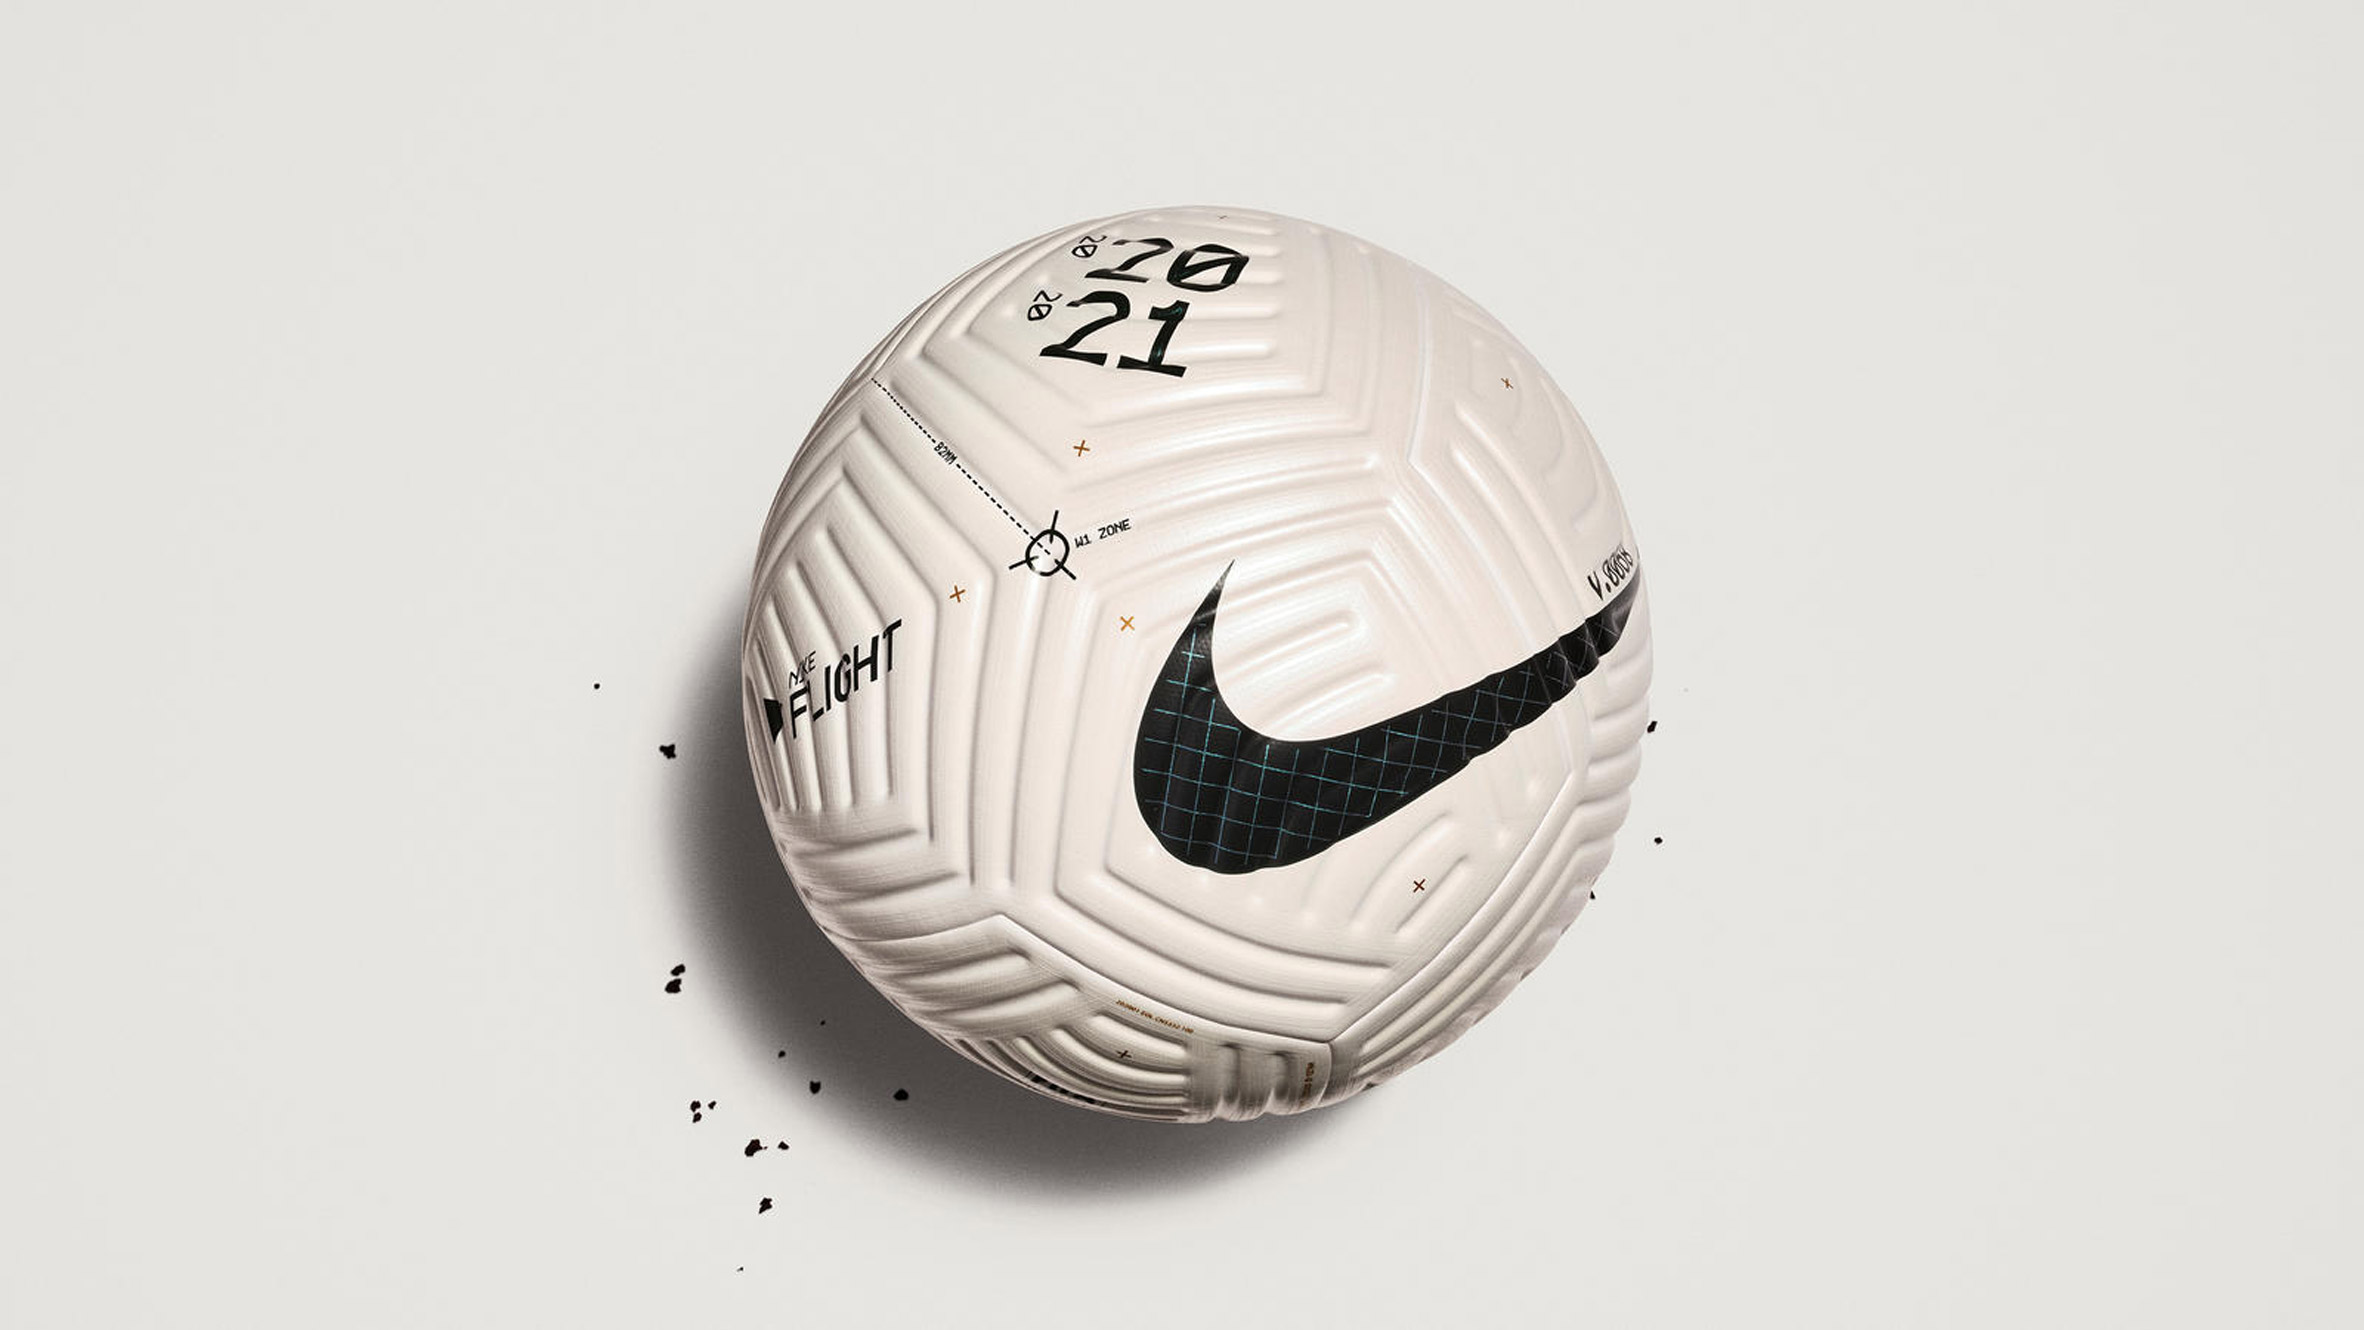 Nike ditches smooth design for dimples with new Flight football